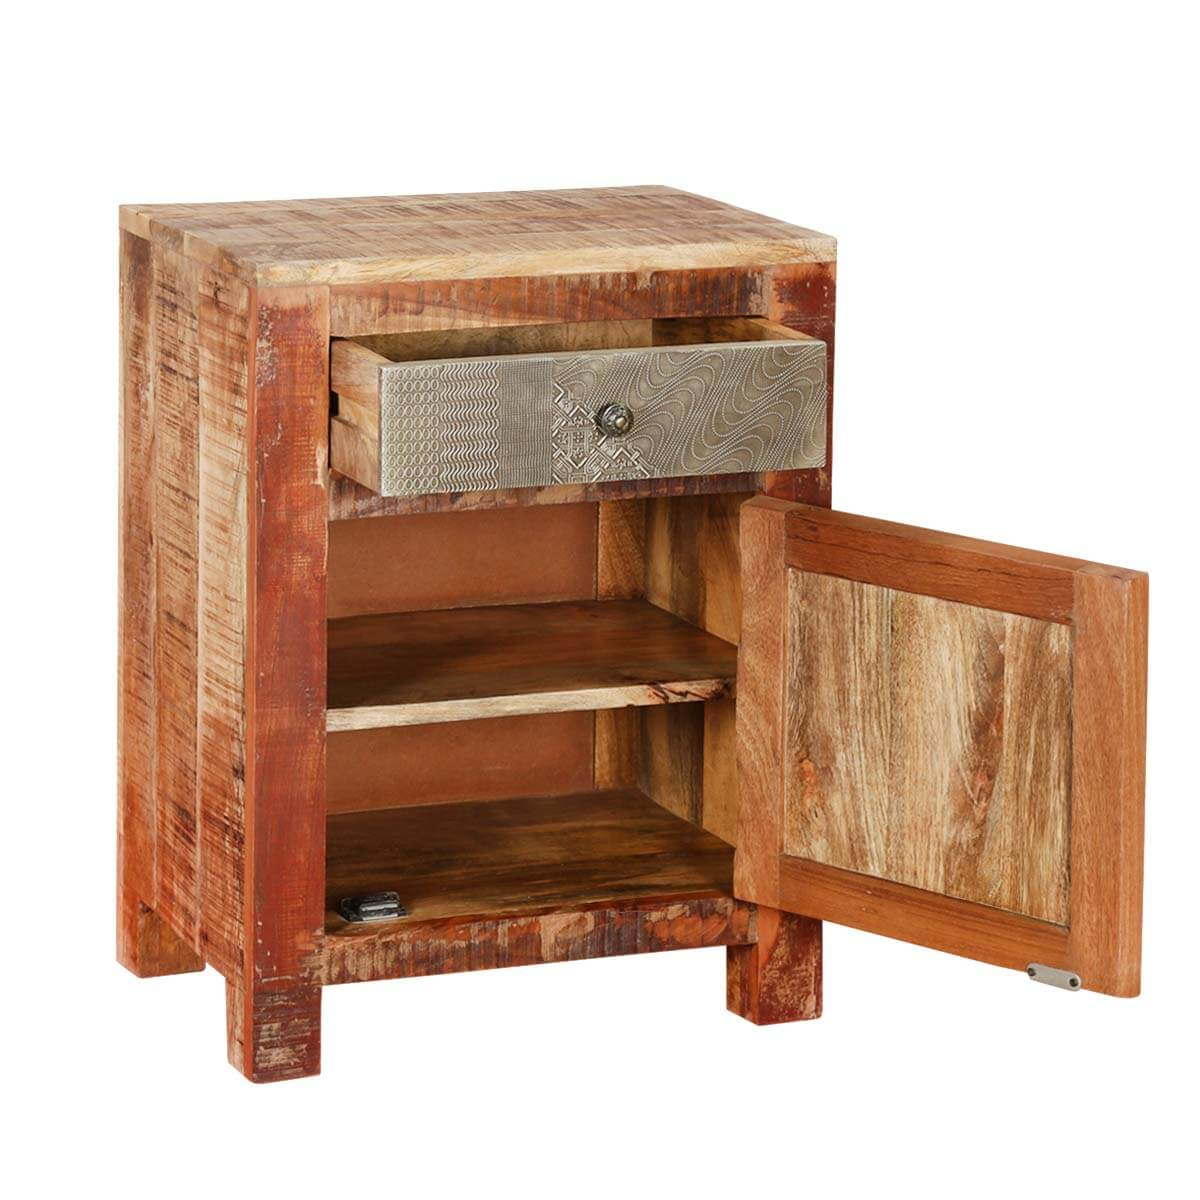 Appalachian rustic reclaimed wood freestanding accent for Rustic wood nightstand